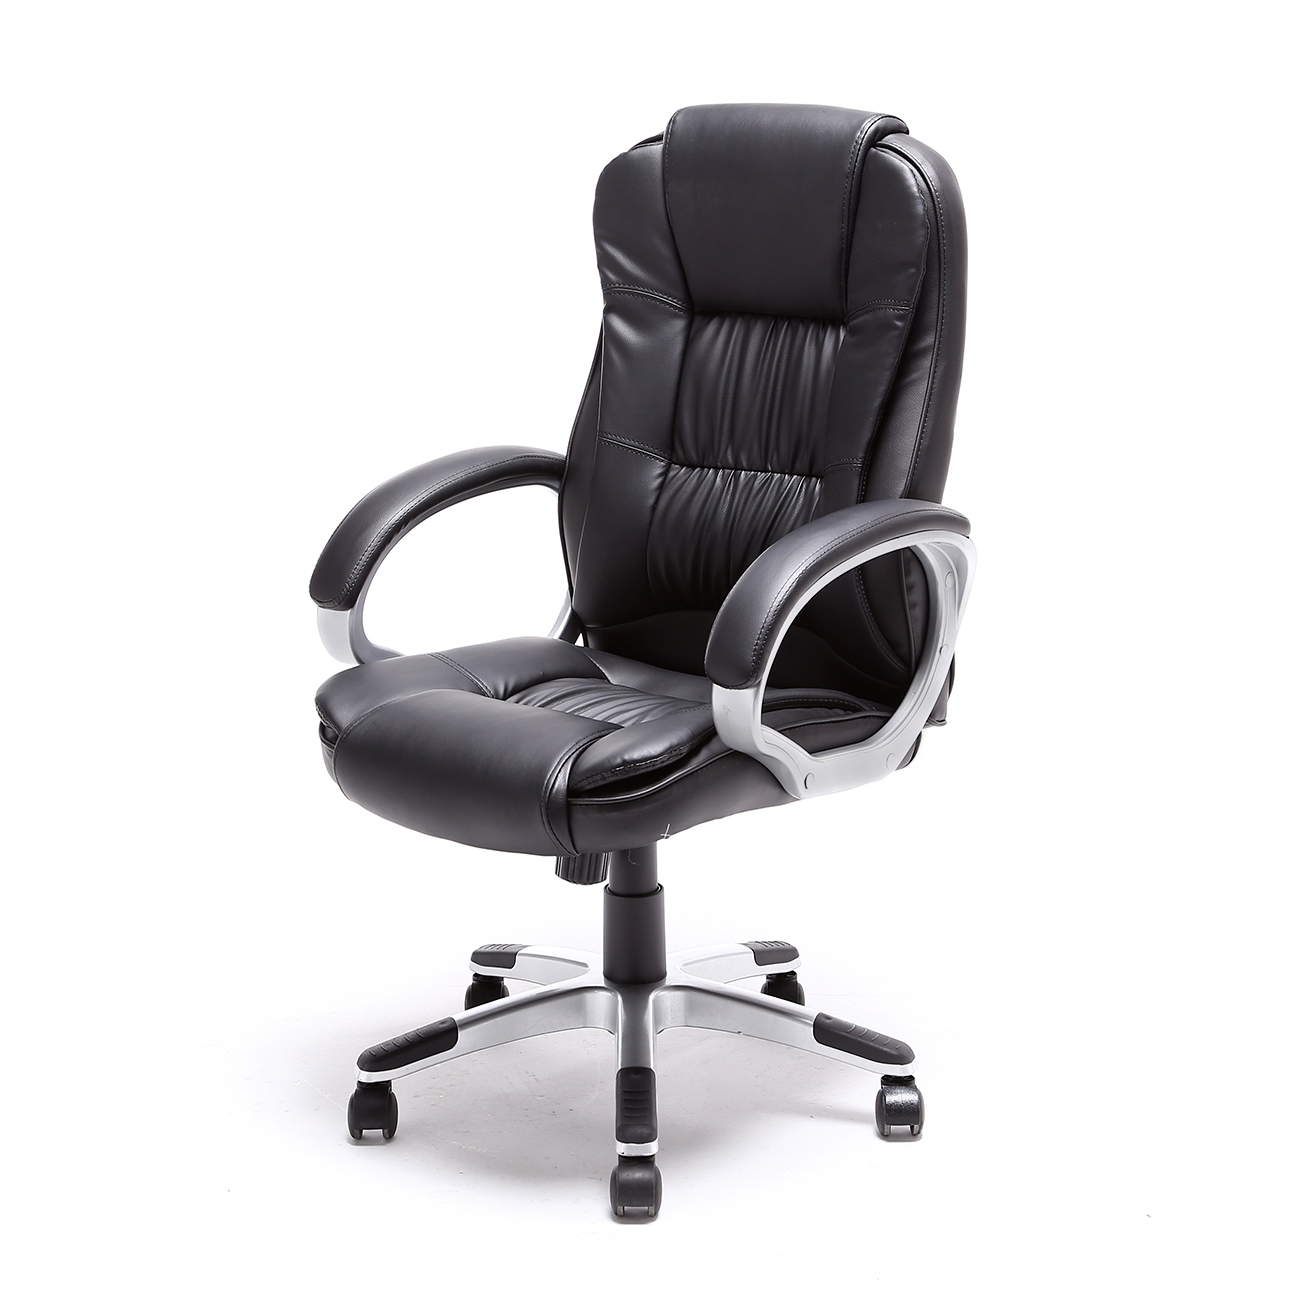 Wondrous Details About Desk Chair Computer Task Office Black Executive High Back Pu Leather Modern New Pdpeps Interior Chair Design Pdpepsorg